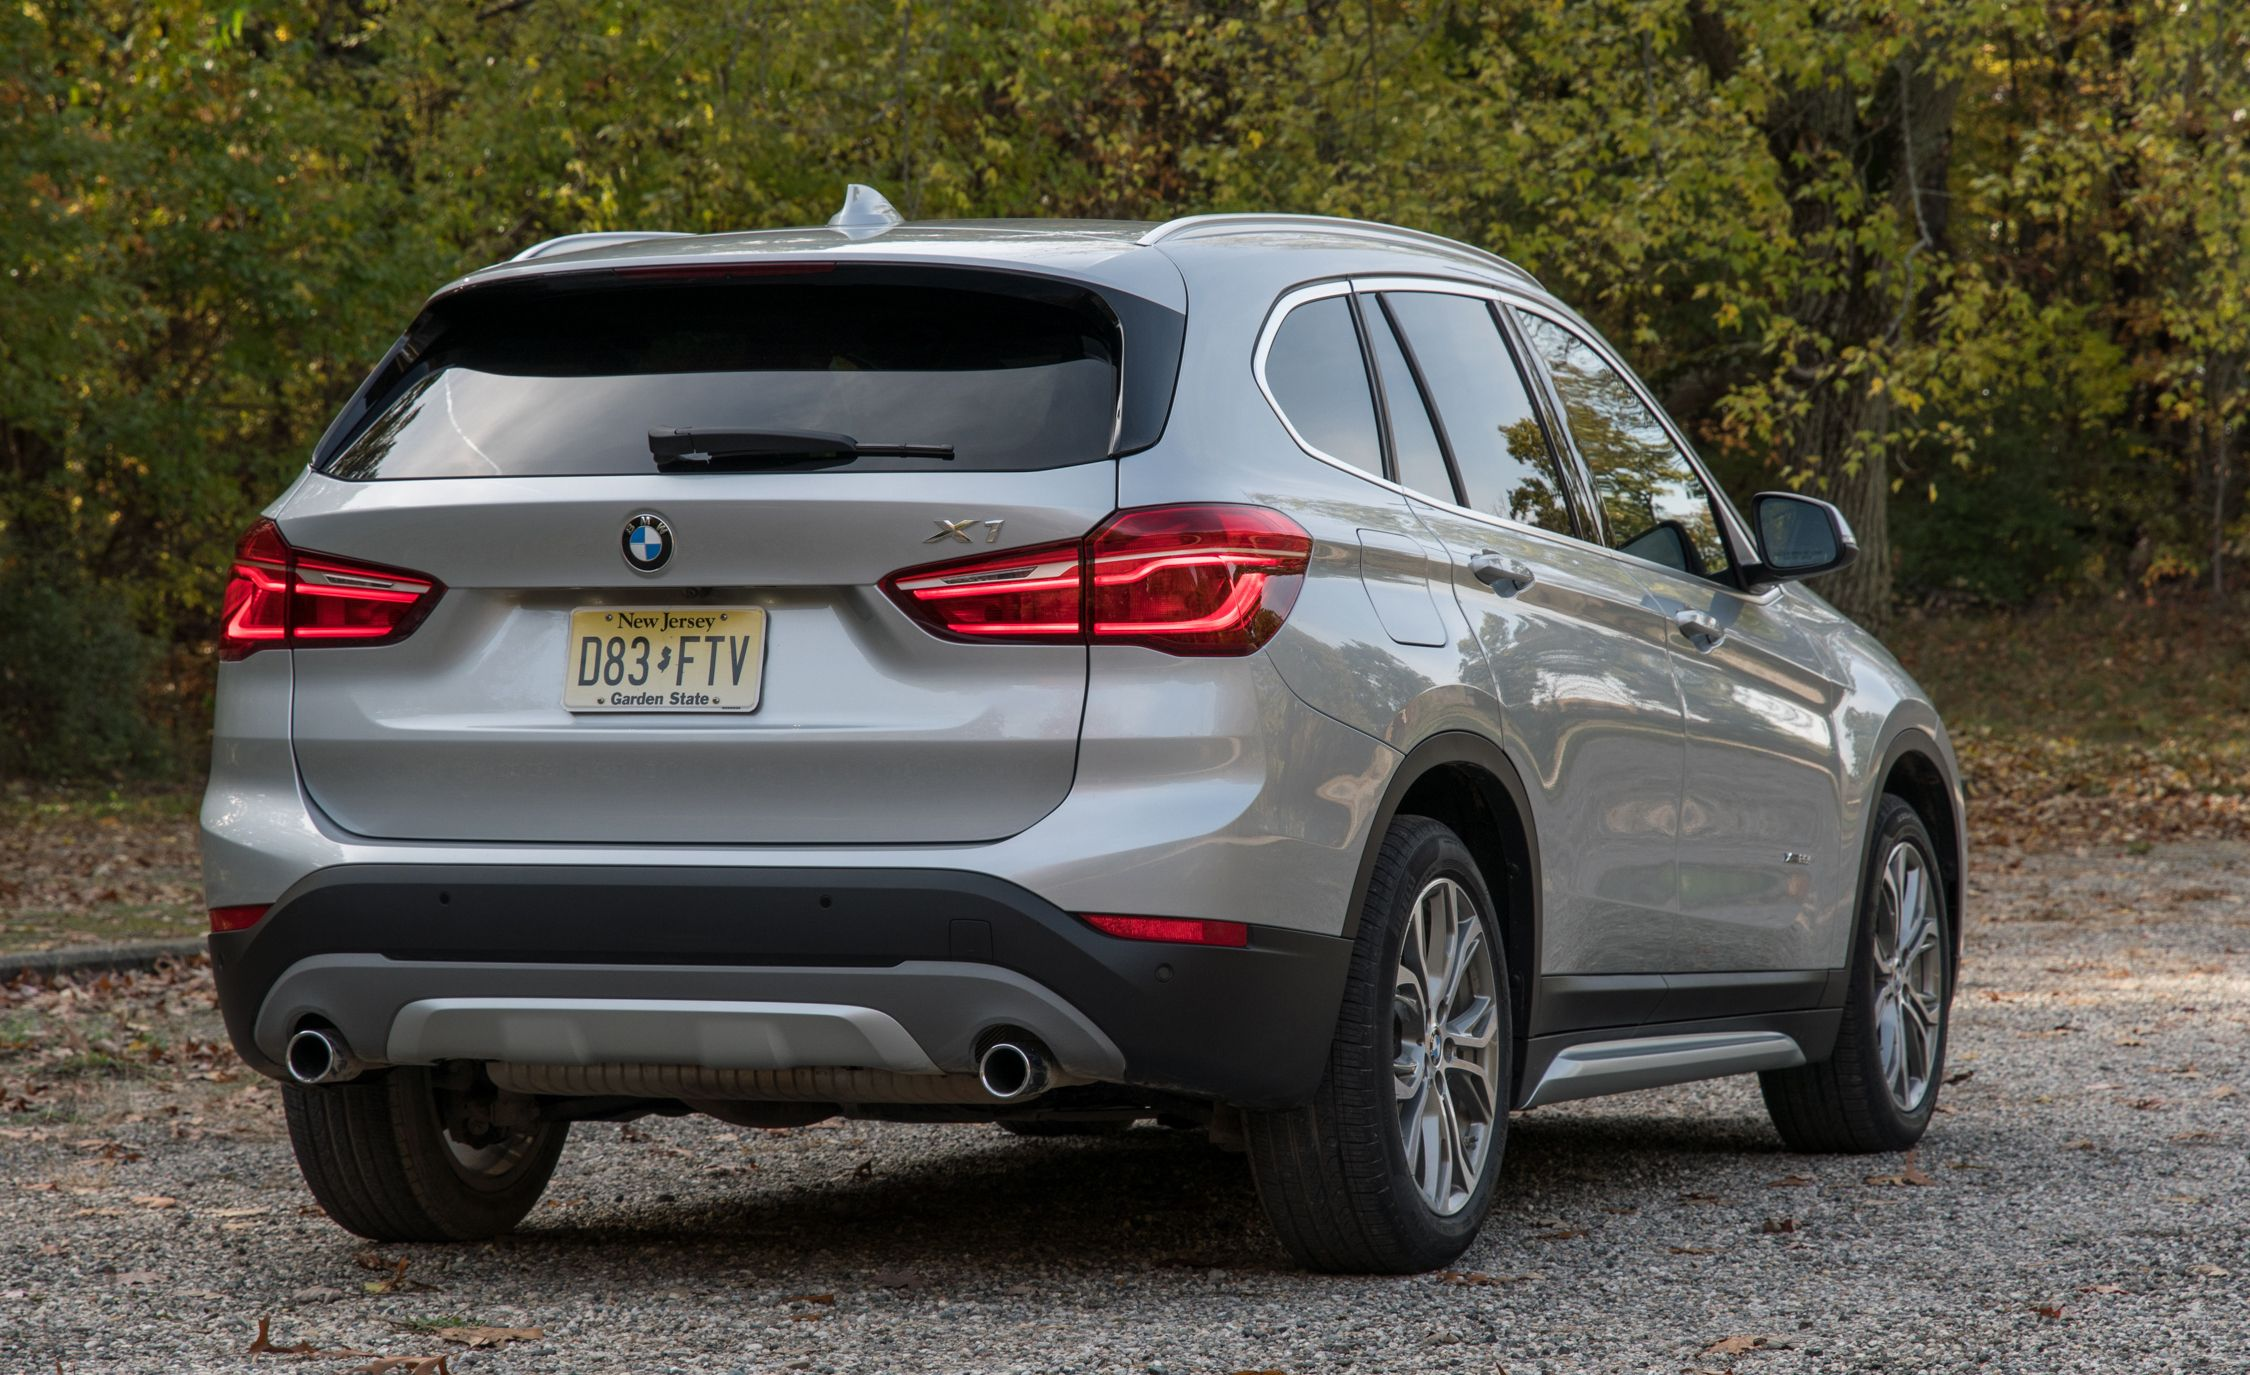 2018 Bmw X1 Cargo Space And Storage Review Car And Driver